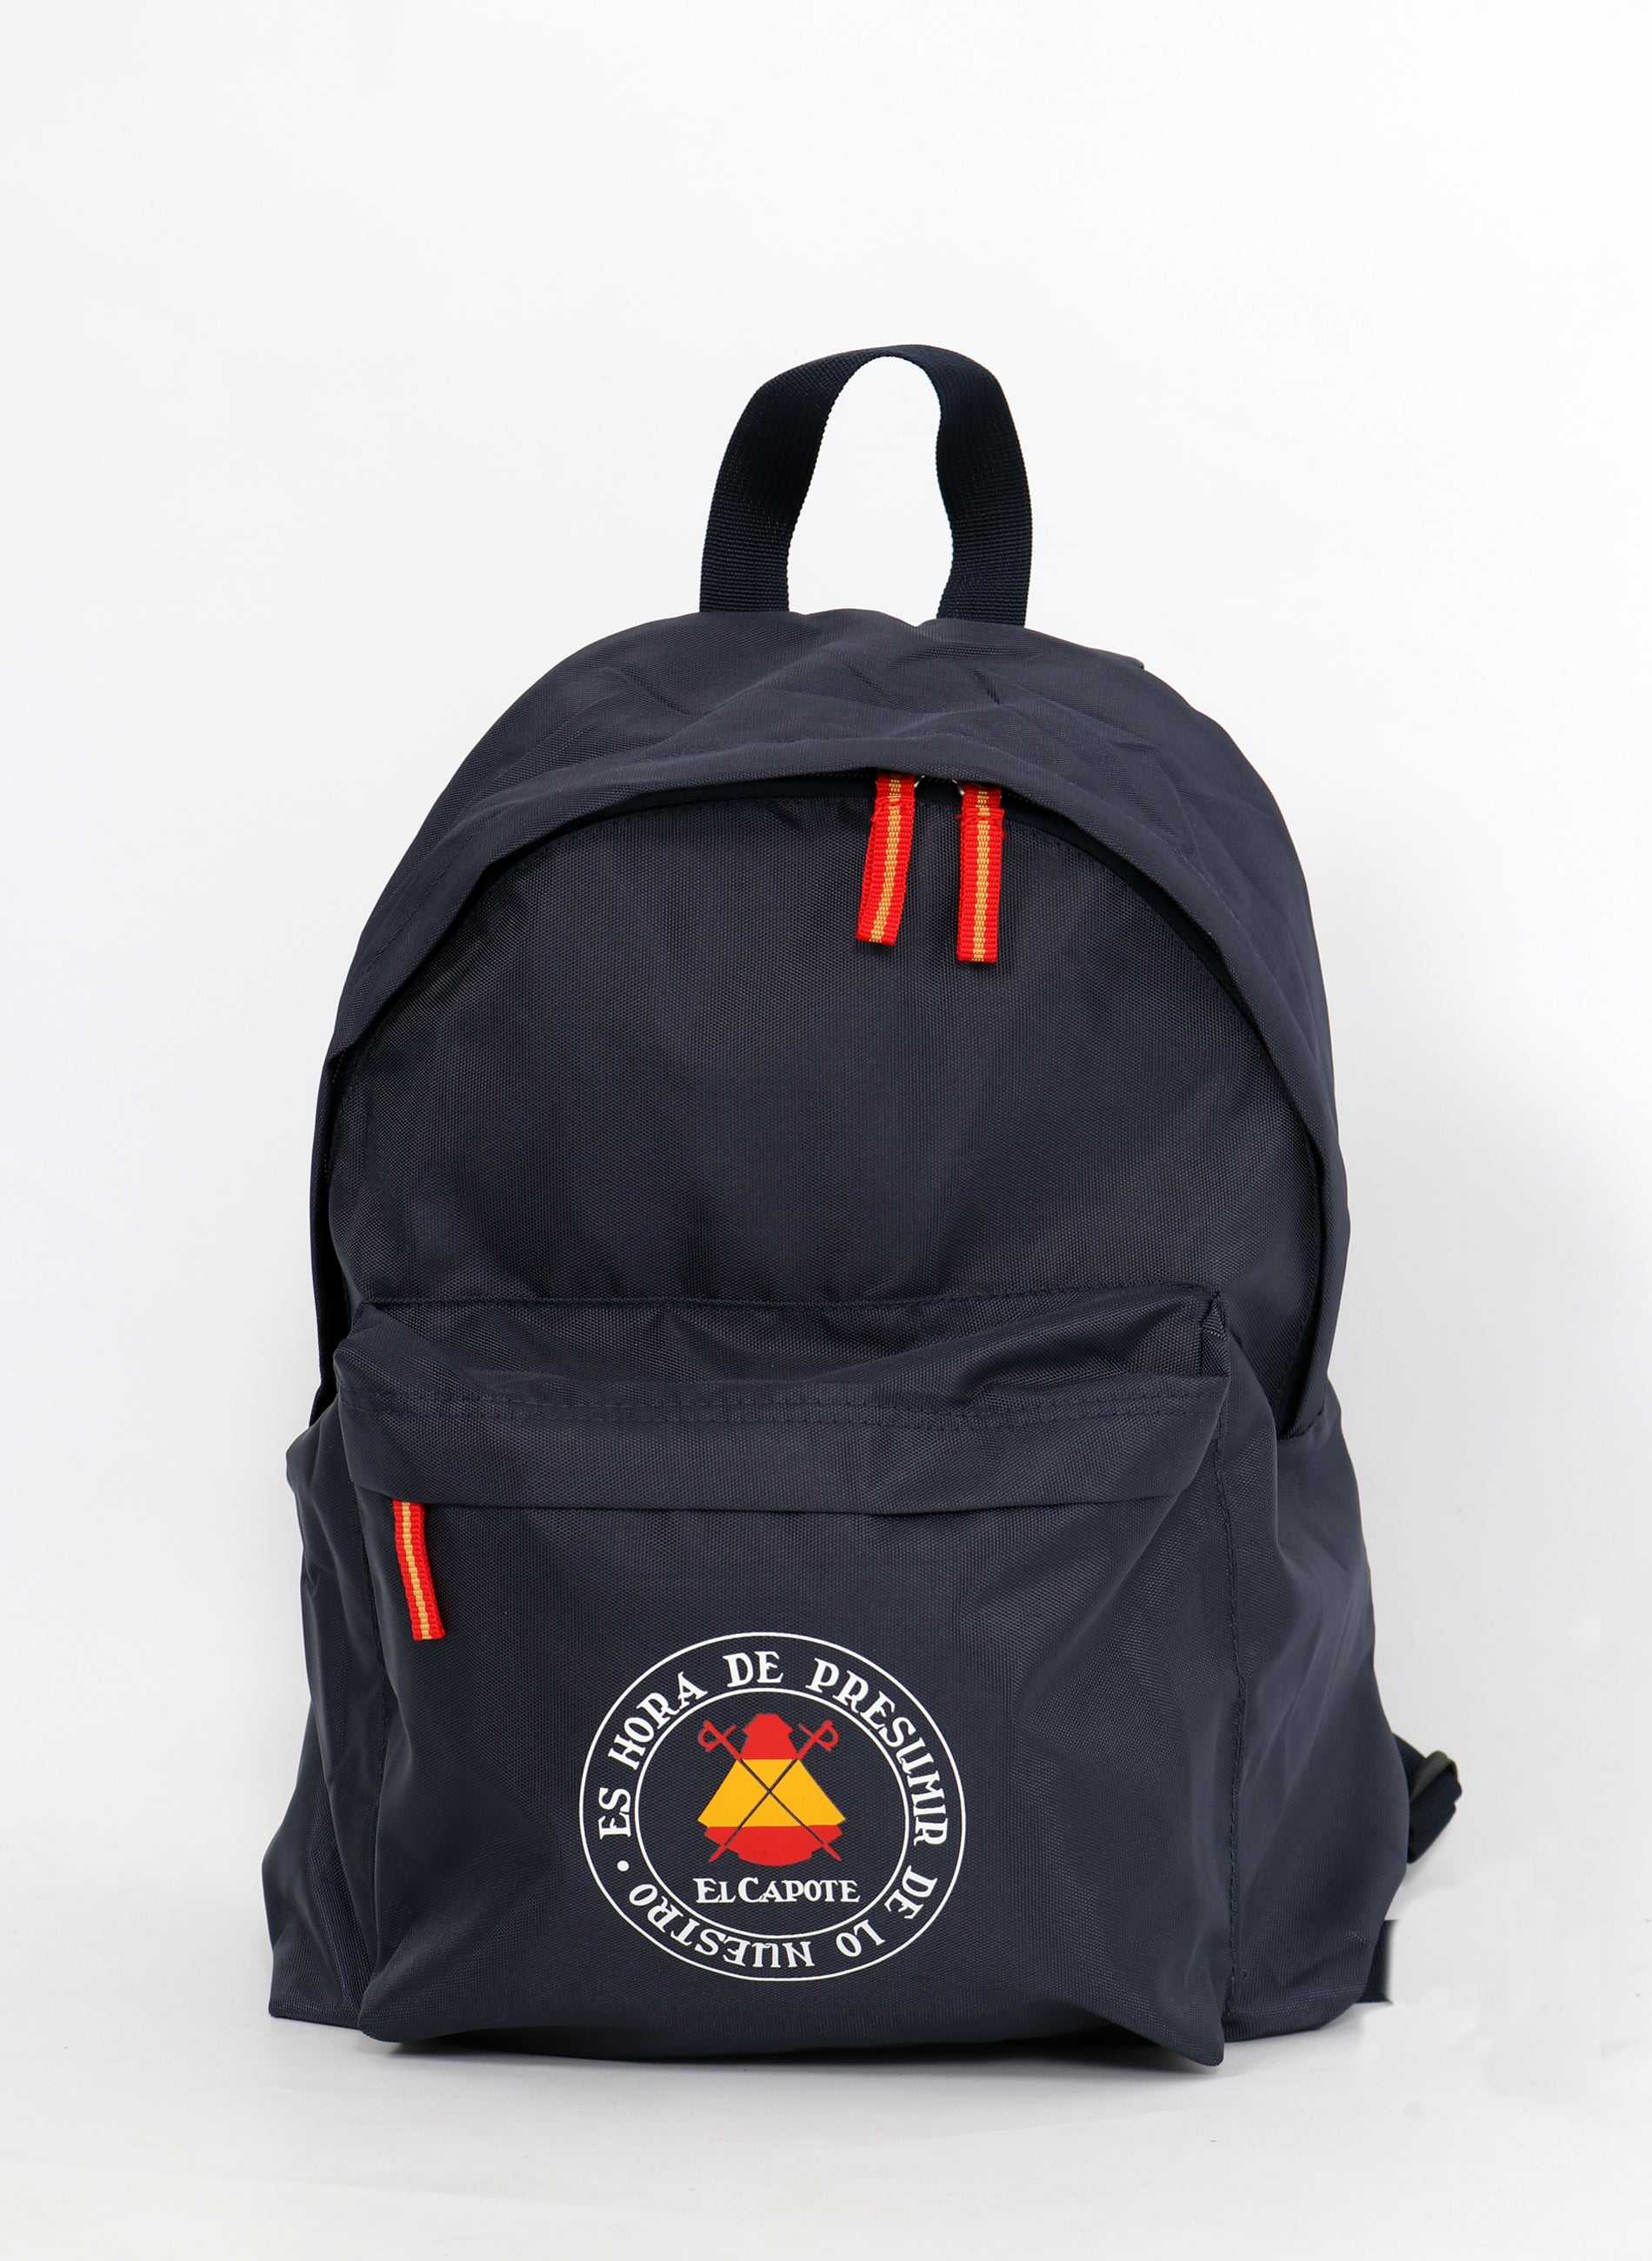 Blue Spain backpack